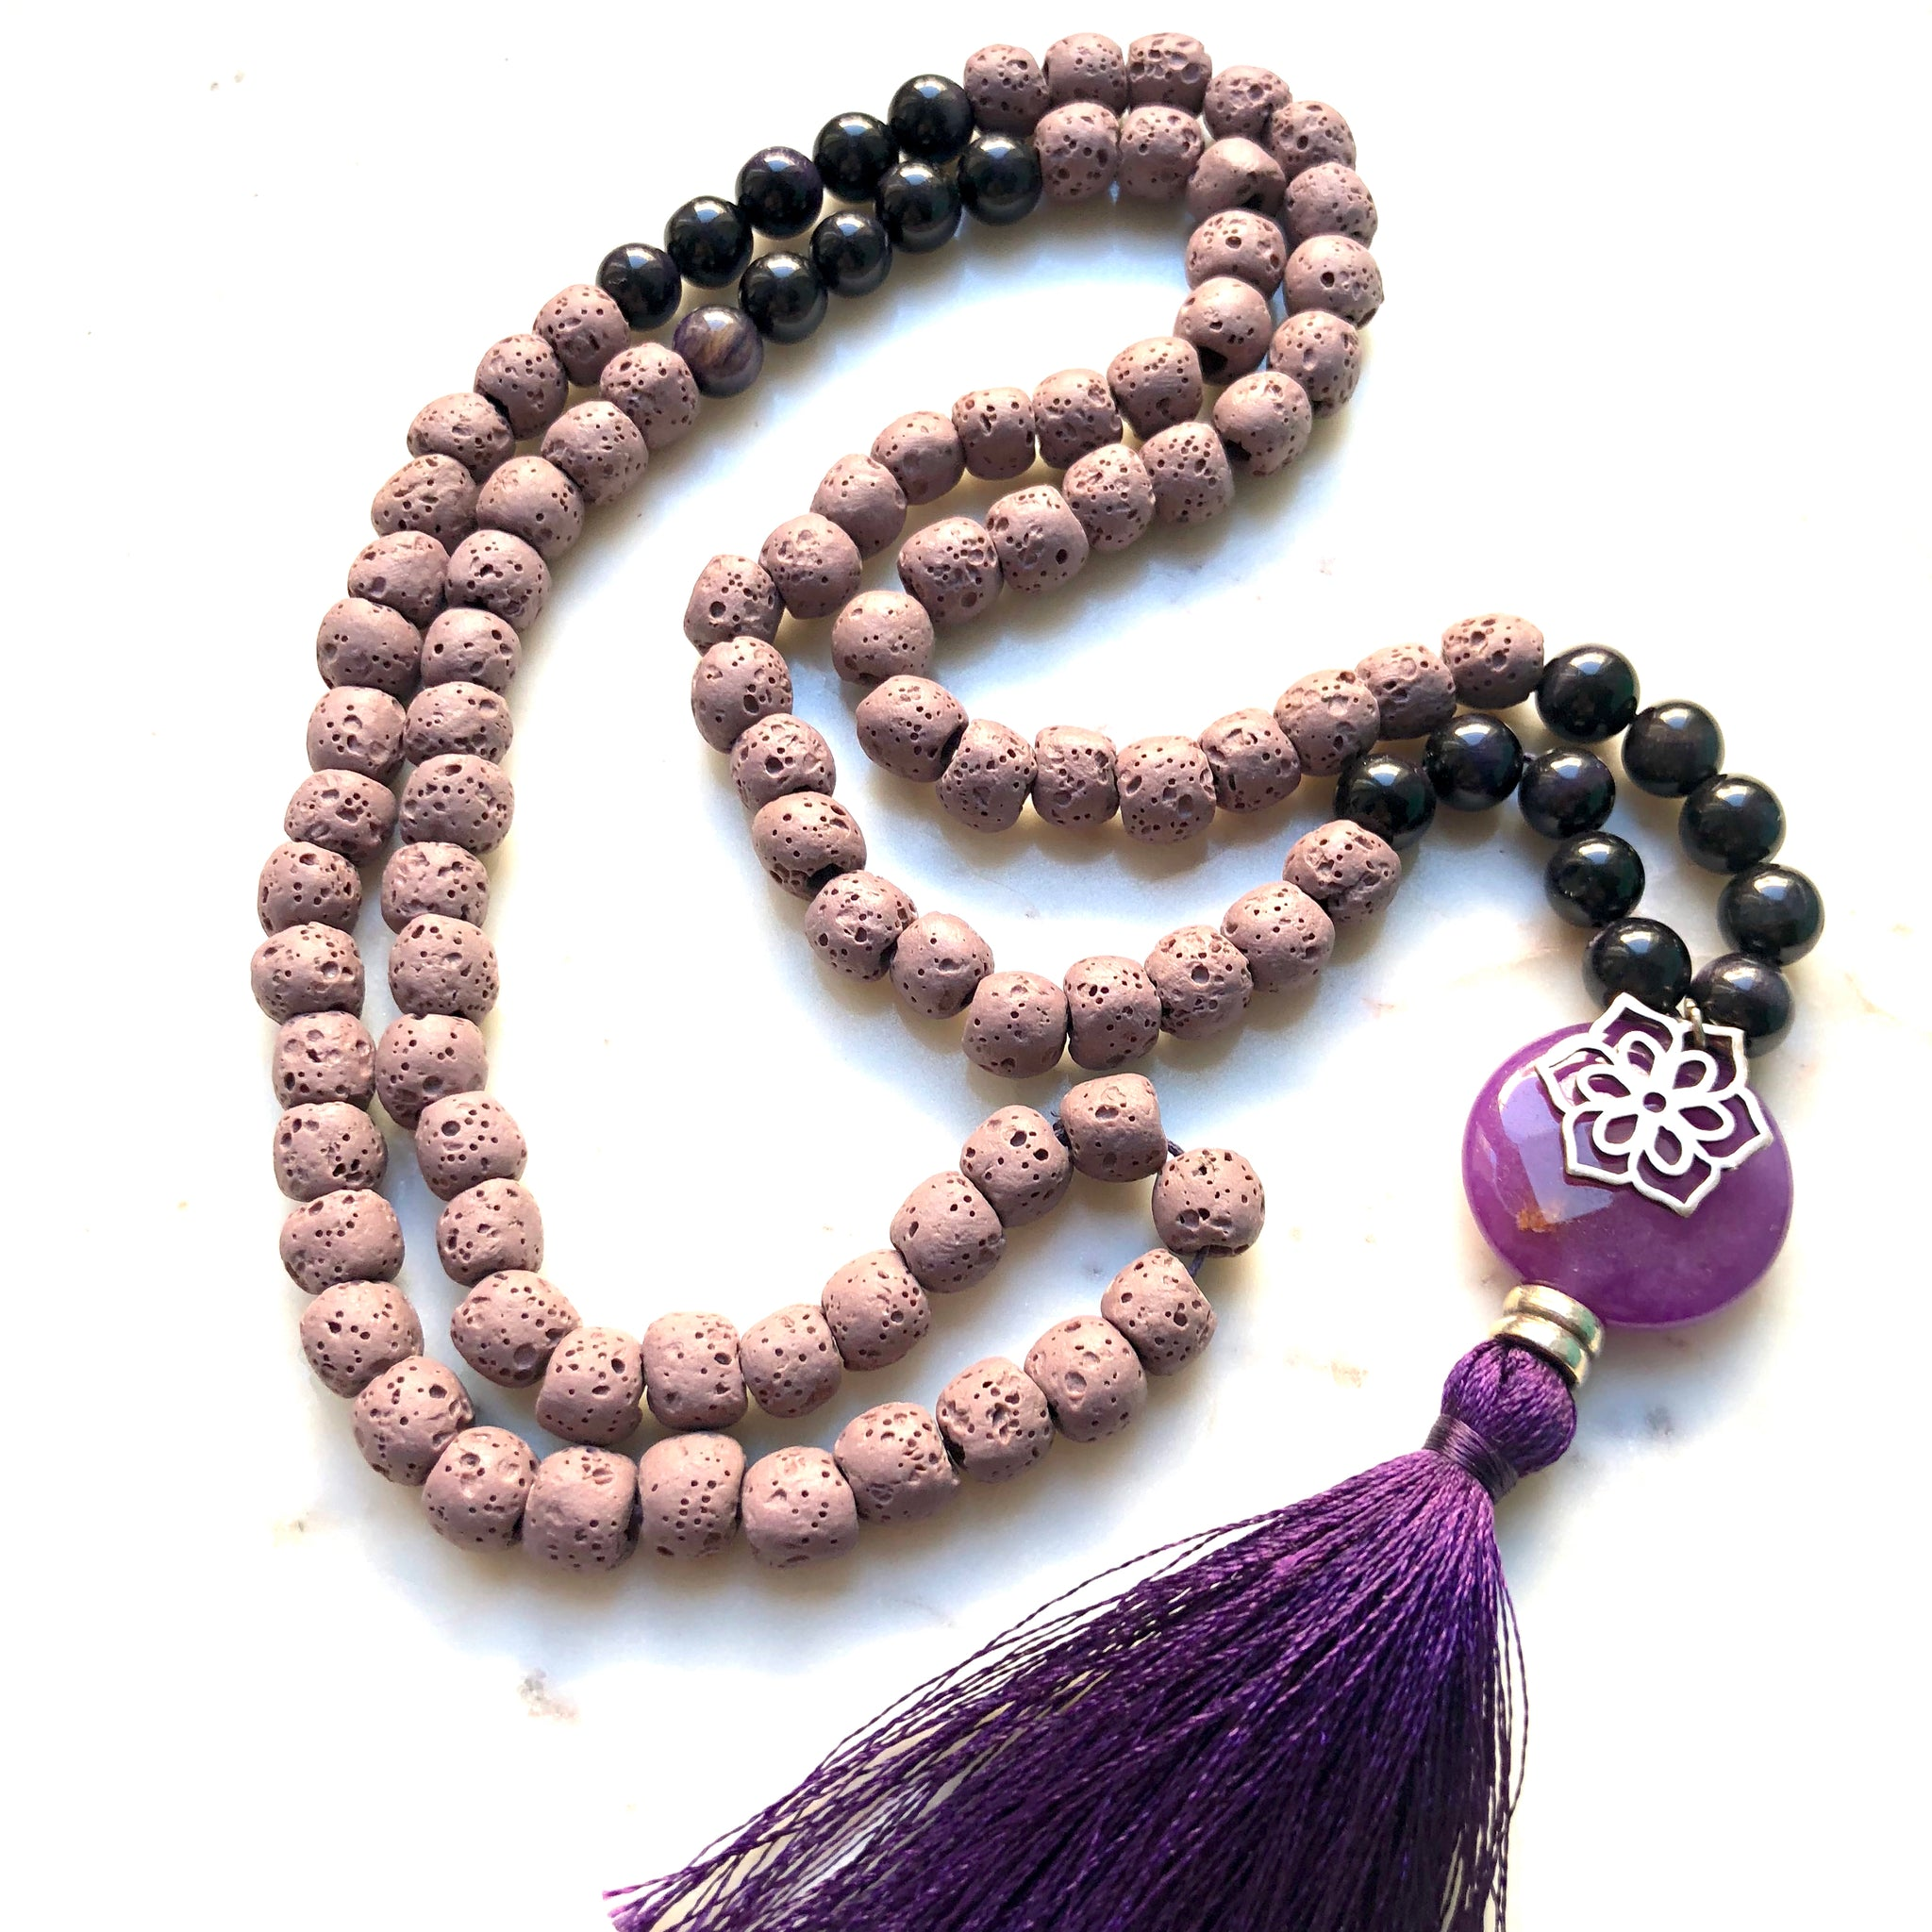 Aria Mala Atelier's unique one-of-a-kind lilac lavastone, purple jade gemstone meditation japa mala with silver mandala charm is for yoga meditation empowering spiritual daily practise and intention setting